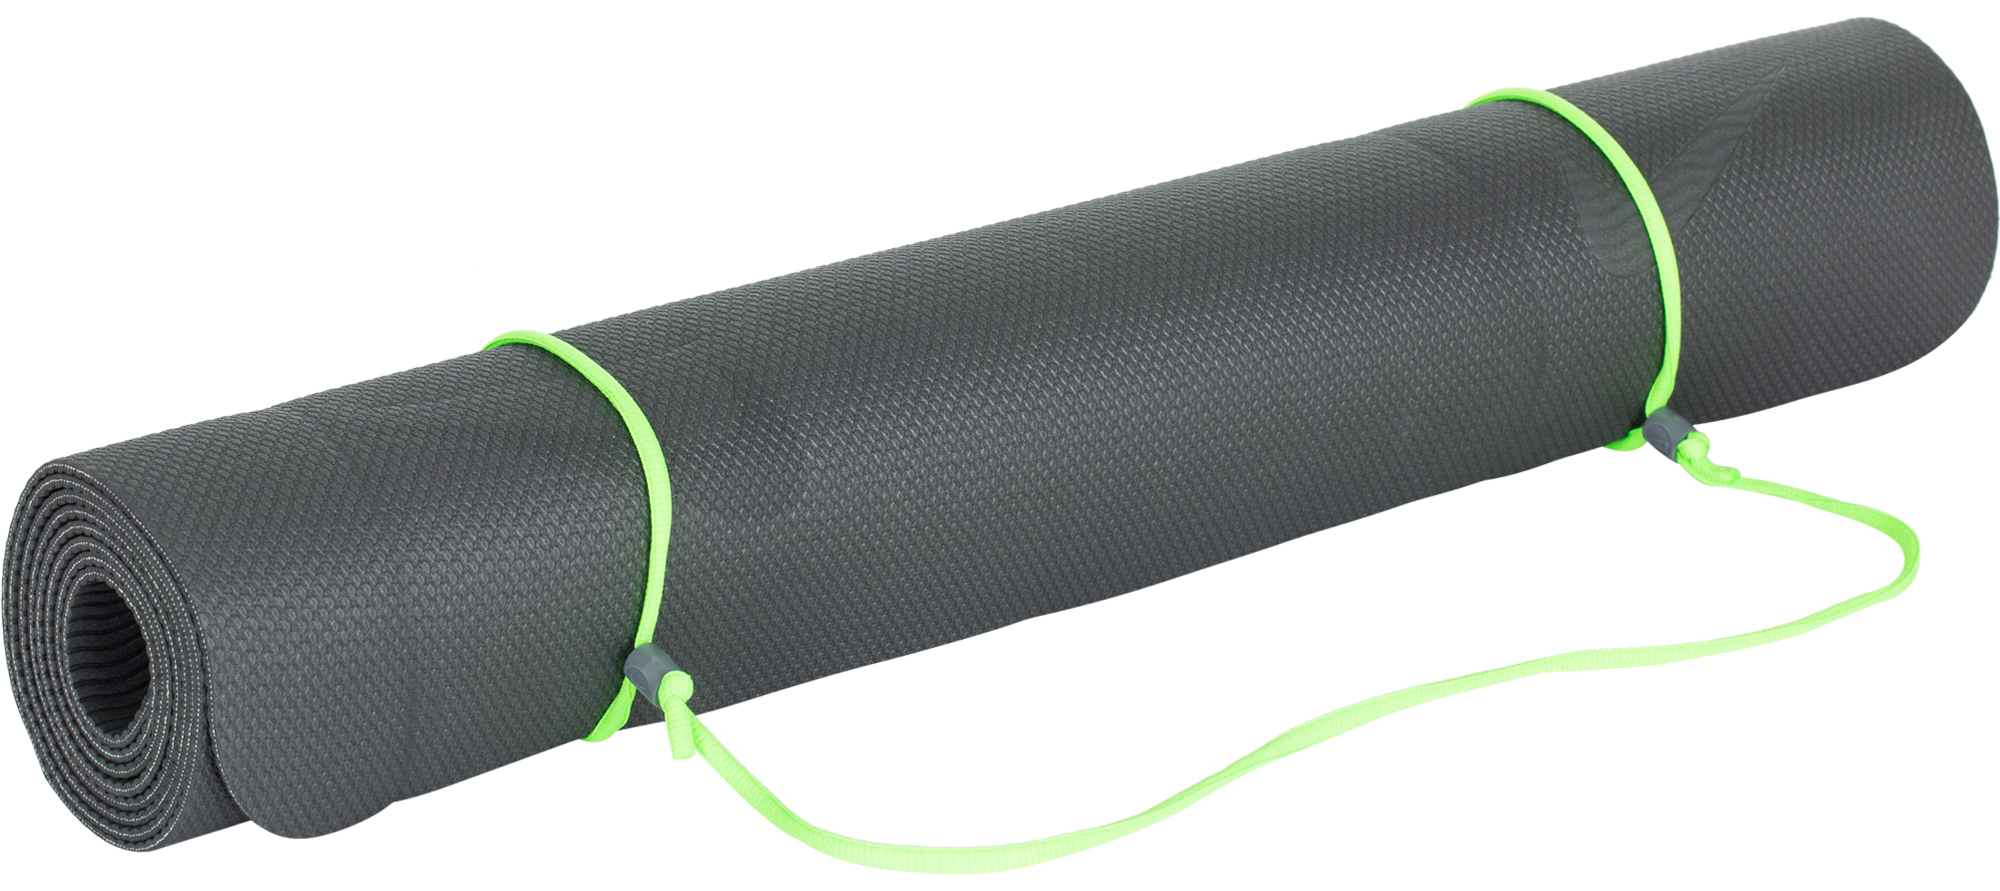 Nike Коврик для йоги Nike Fundamental Yoga Mat